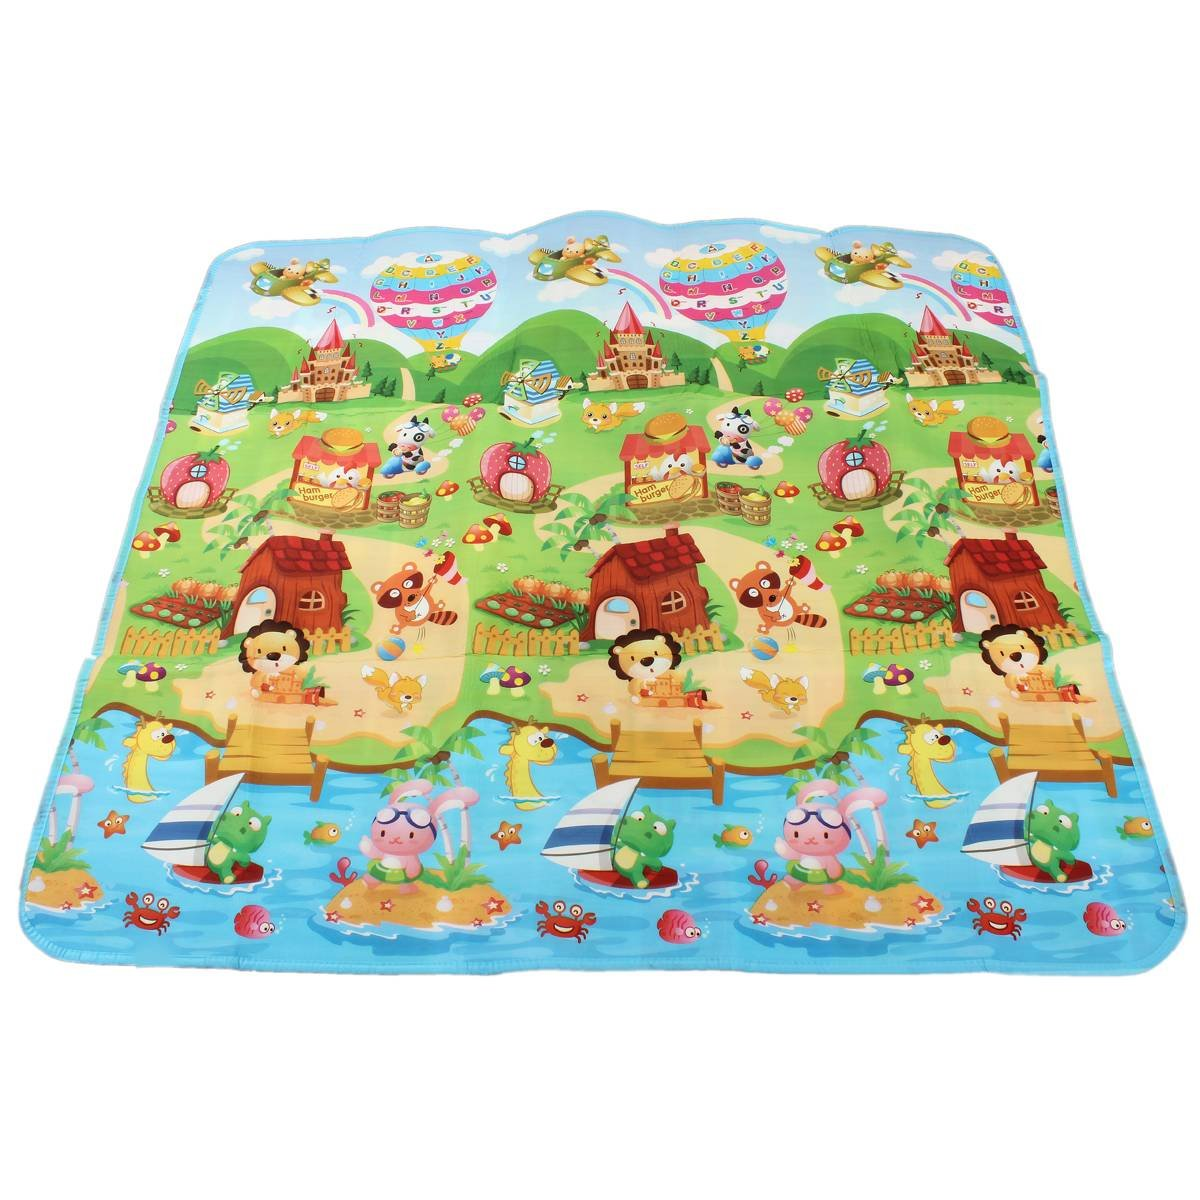 Baby Crawl Mat Kids Play mat Toddler Playing Carpet Picnic Blanket ...